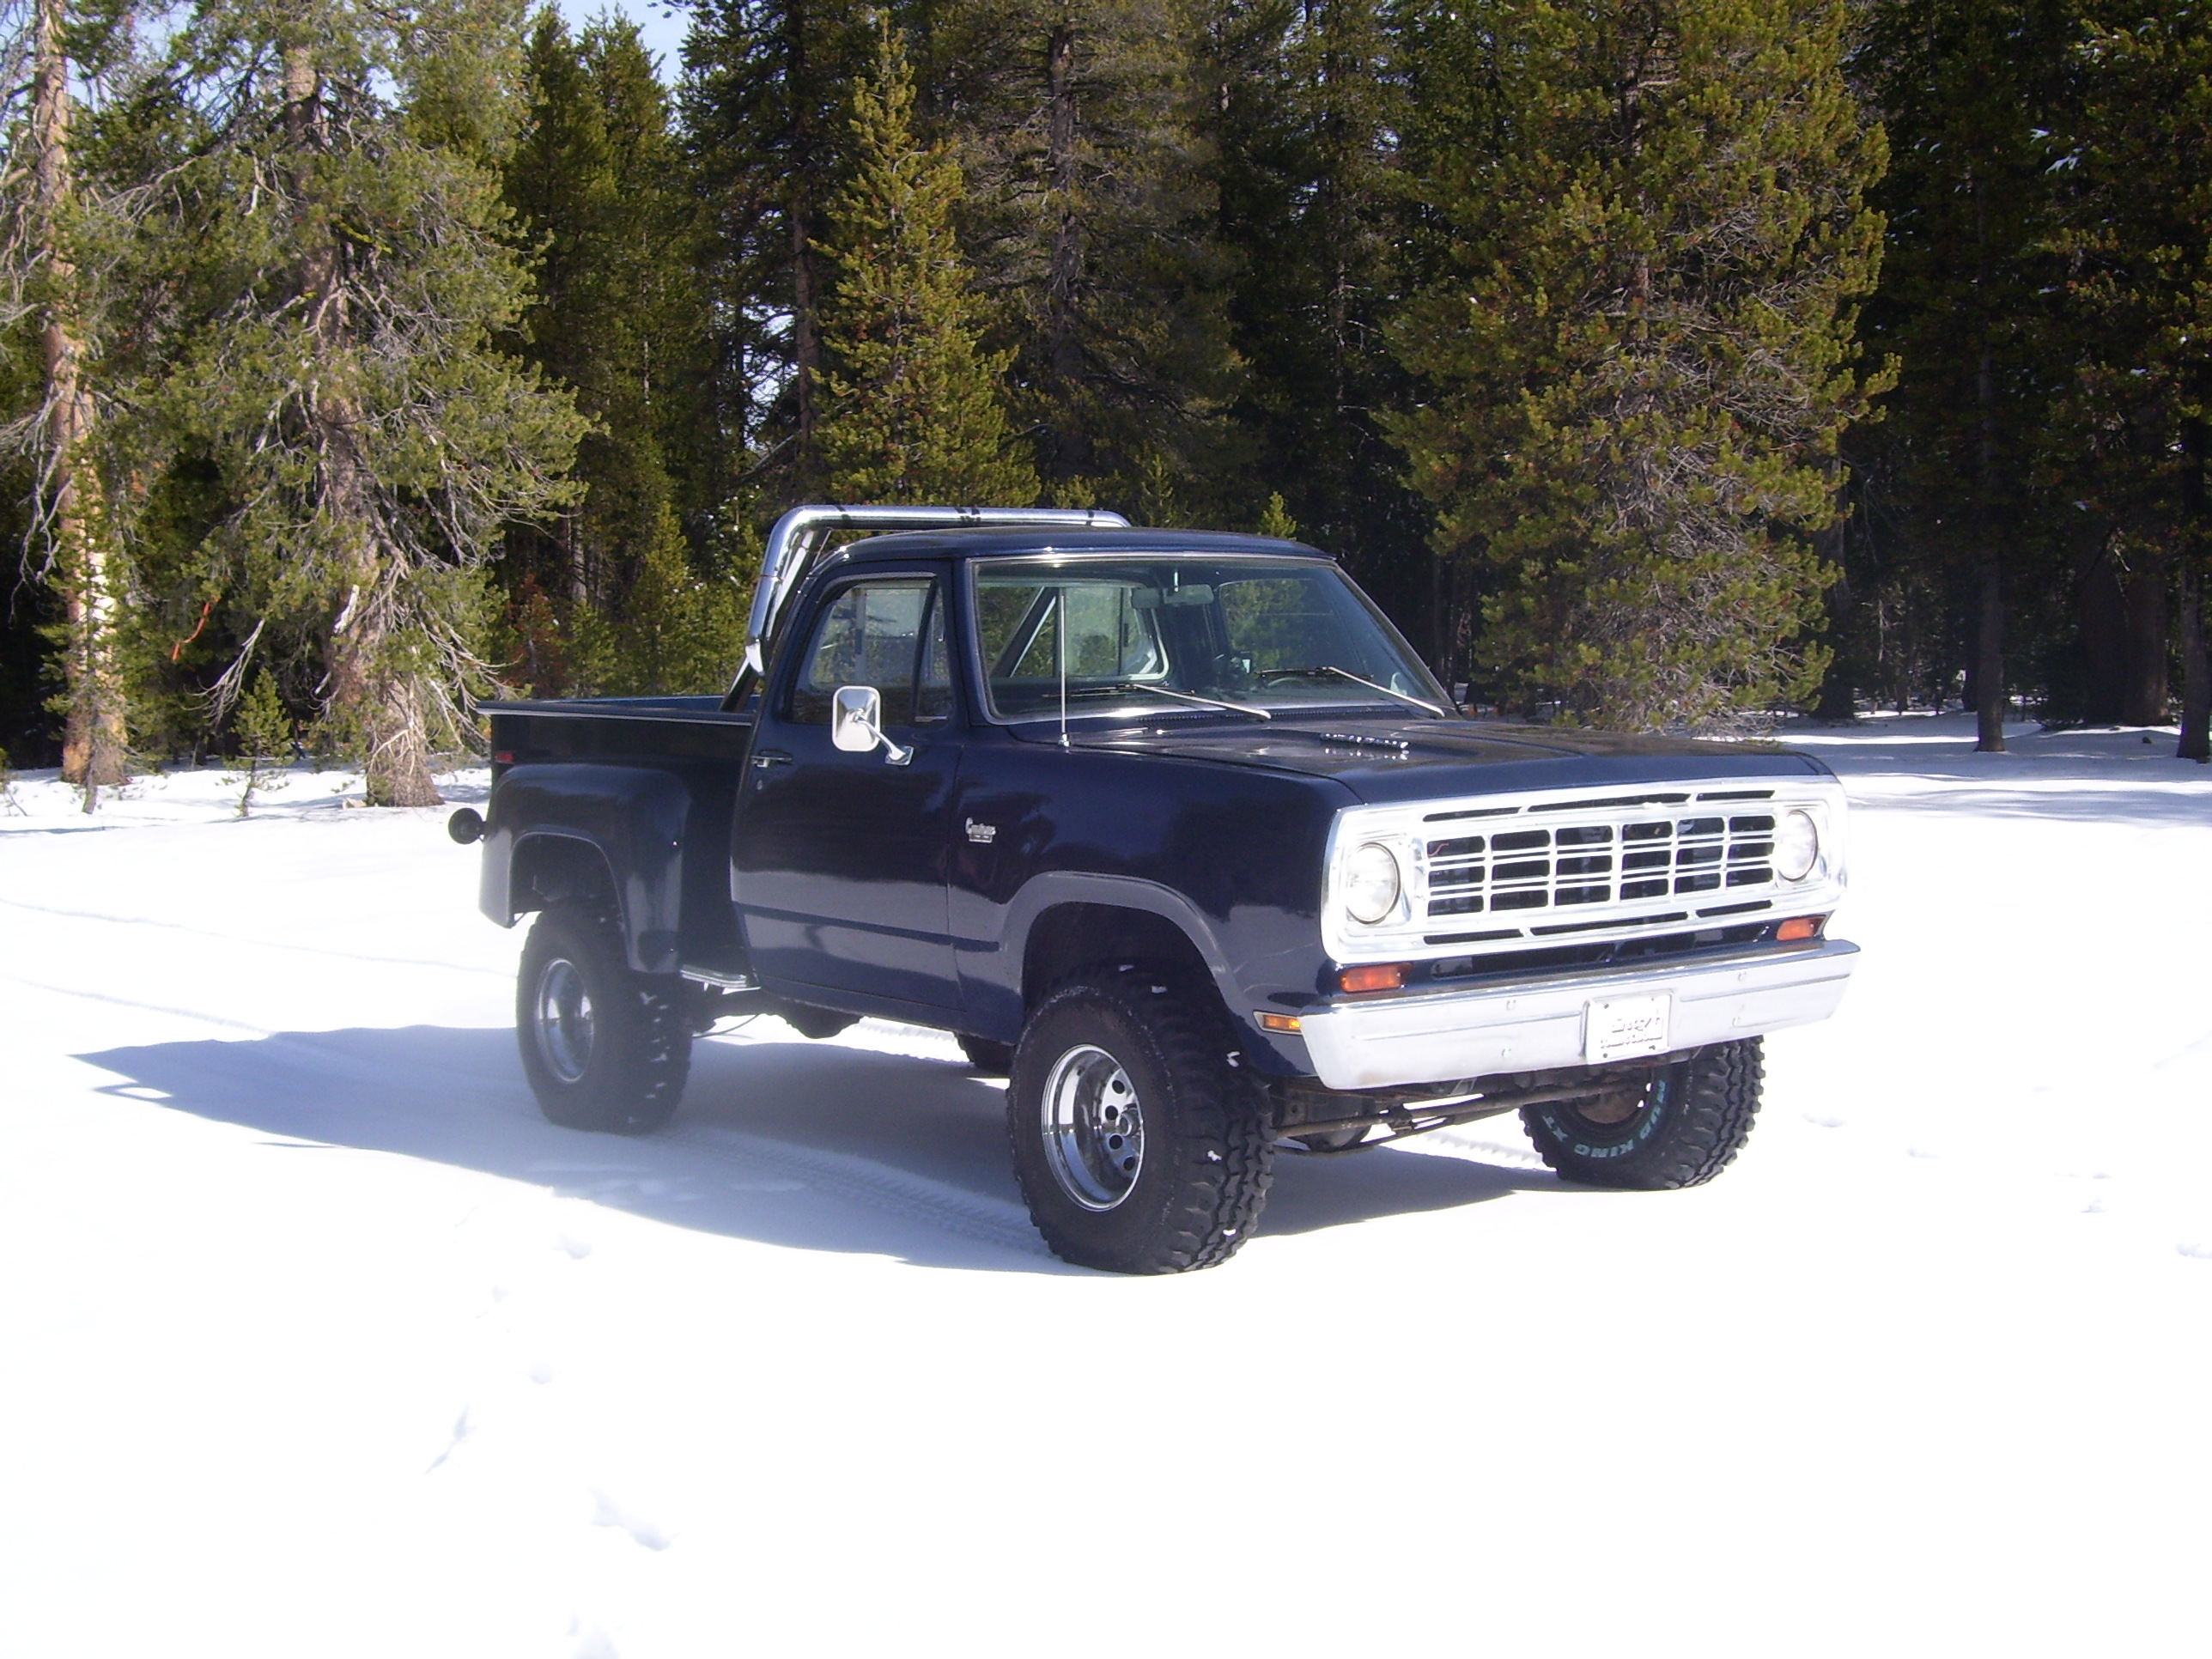 xXDeetzXx's 1975 Dodge Power Wagon